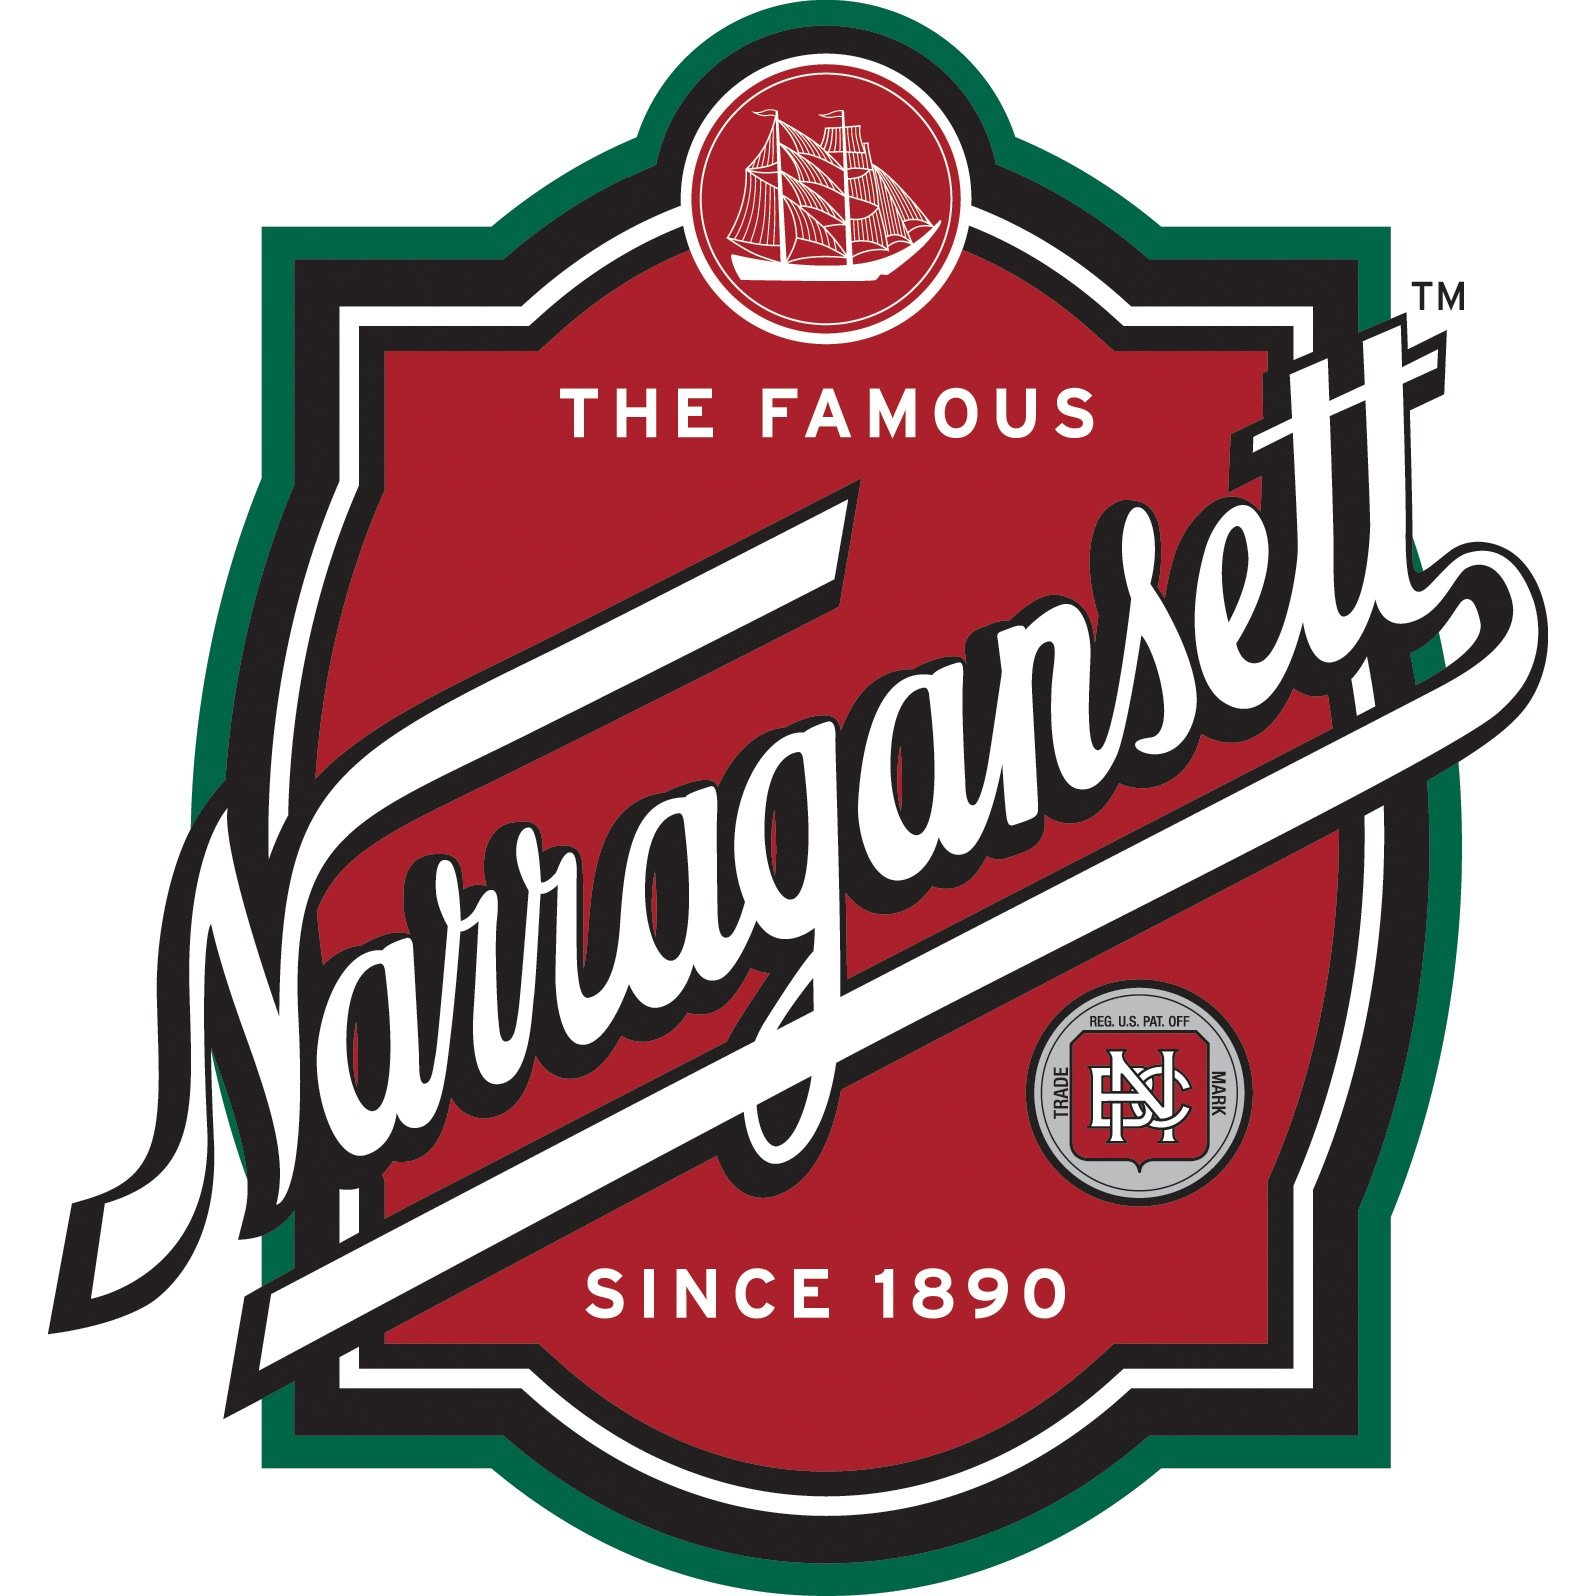 Field Sales Manager - Narragansett Brewing Company